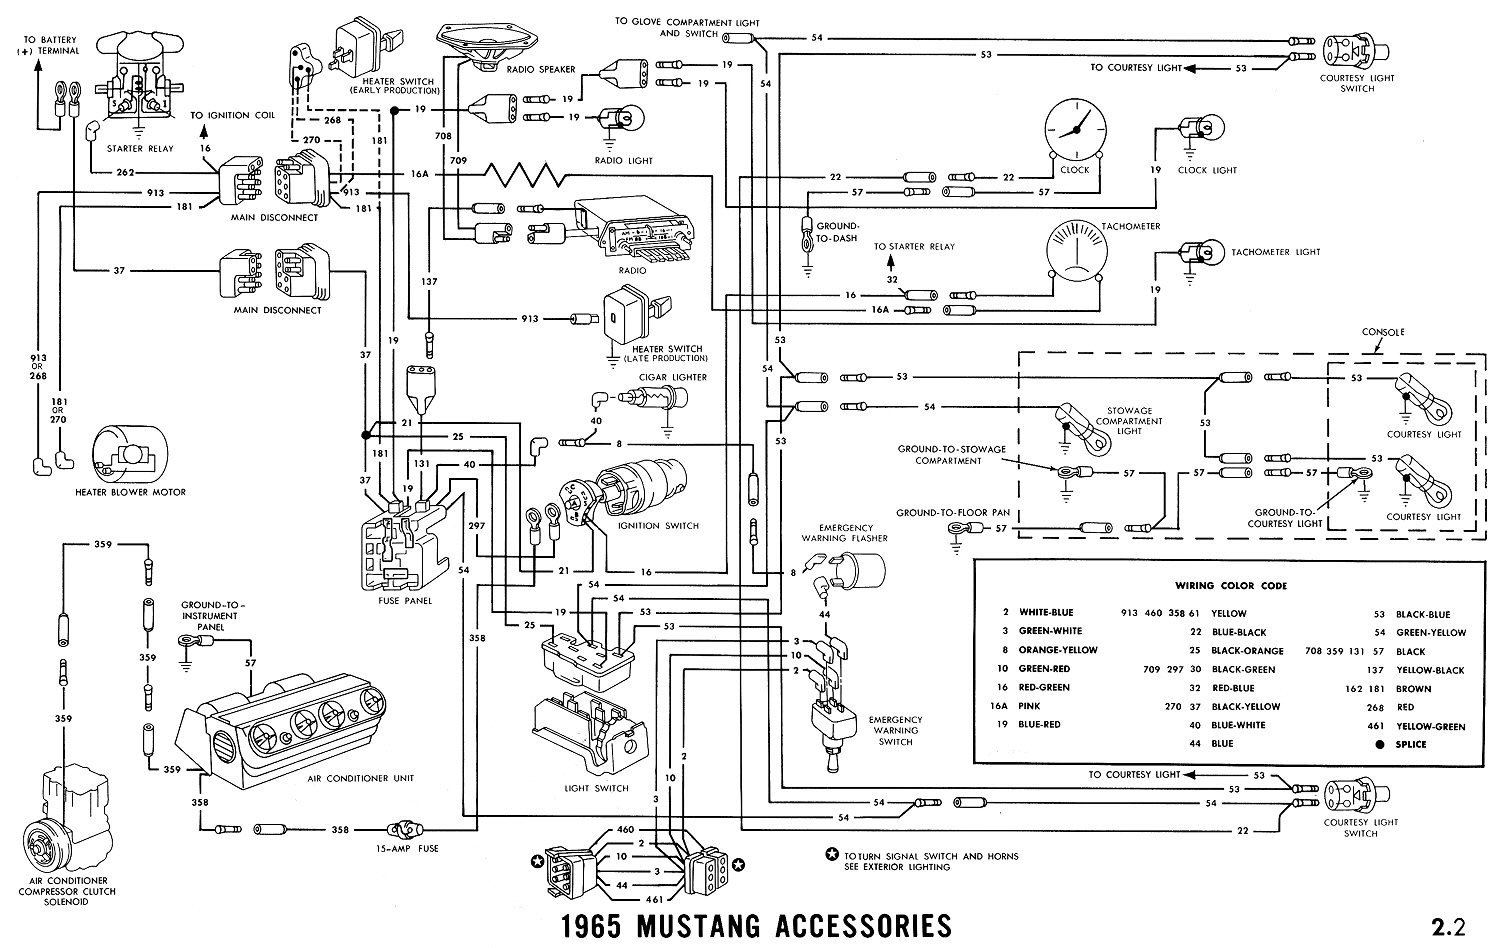 1965i 1965 mustang wiring diagrams average joe restoration 1965 ford mustang wiring diagrams at mifinder.co